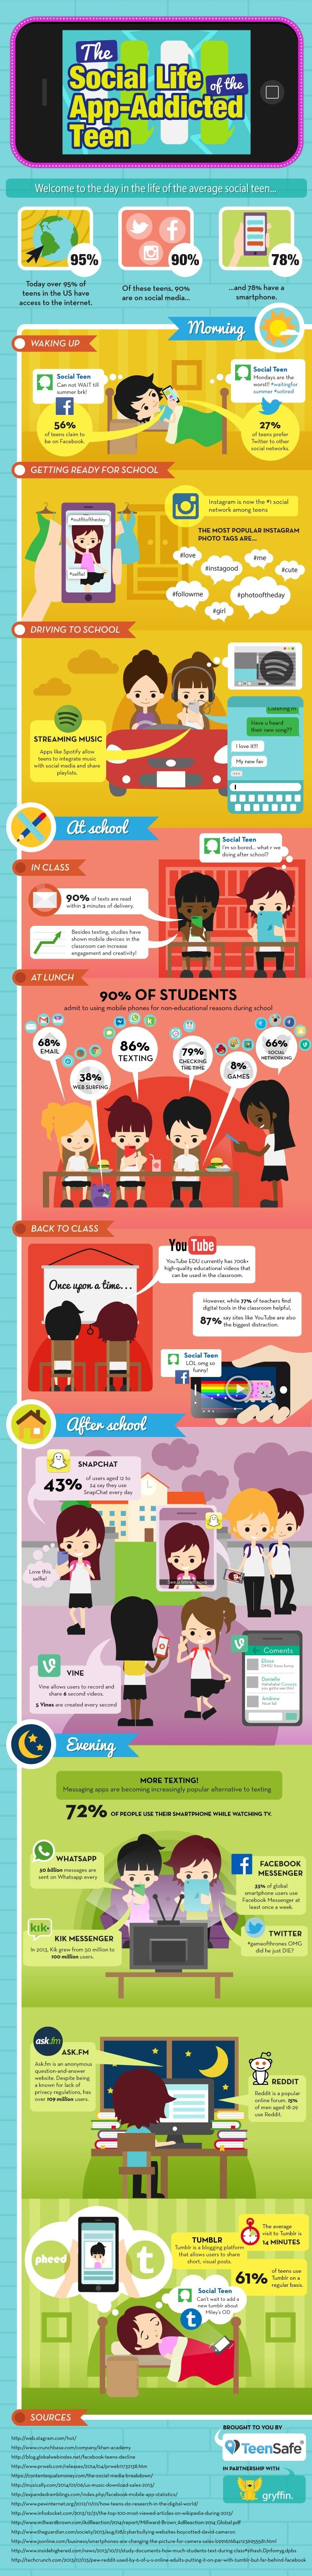 The social life of the App-Addicted Teen #infographic